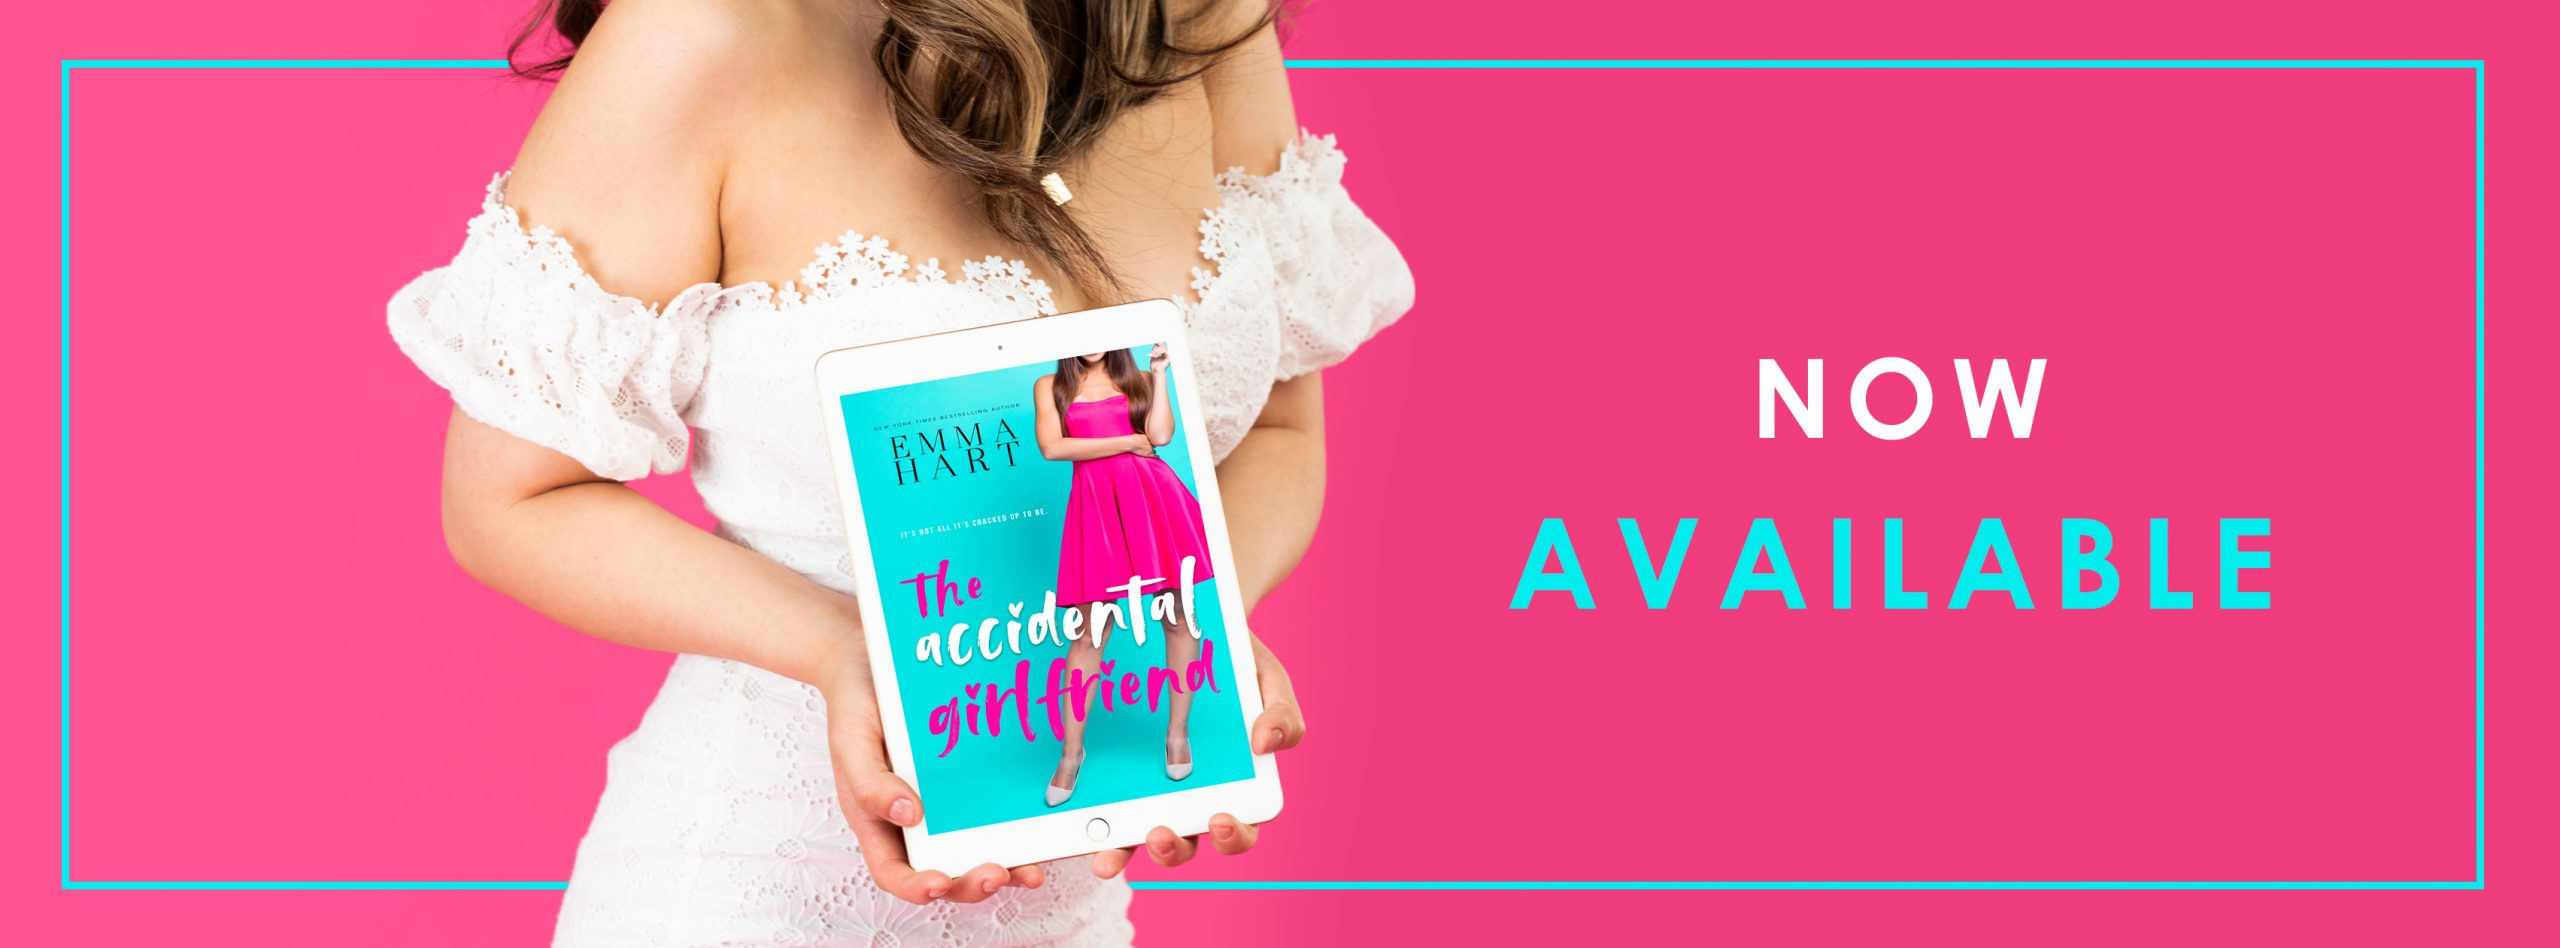 Release Blitz: The Accidental Girlfriend by Emma Hart